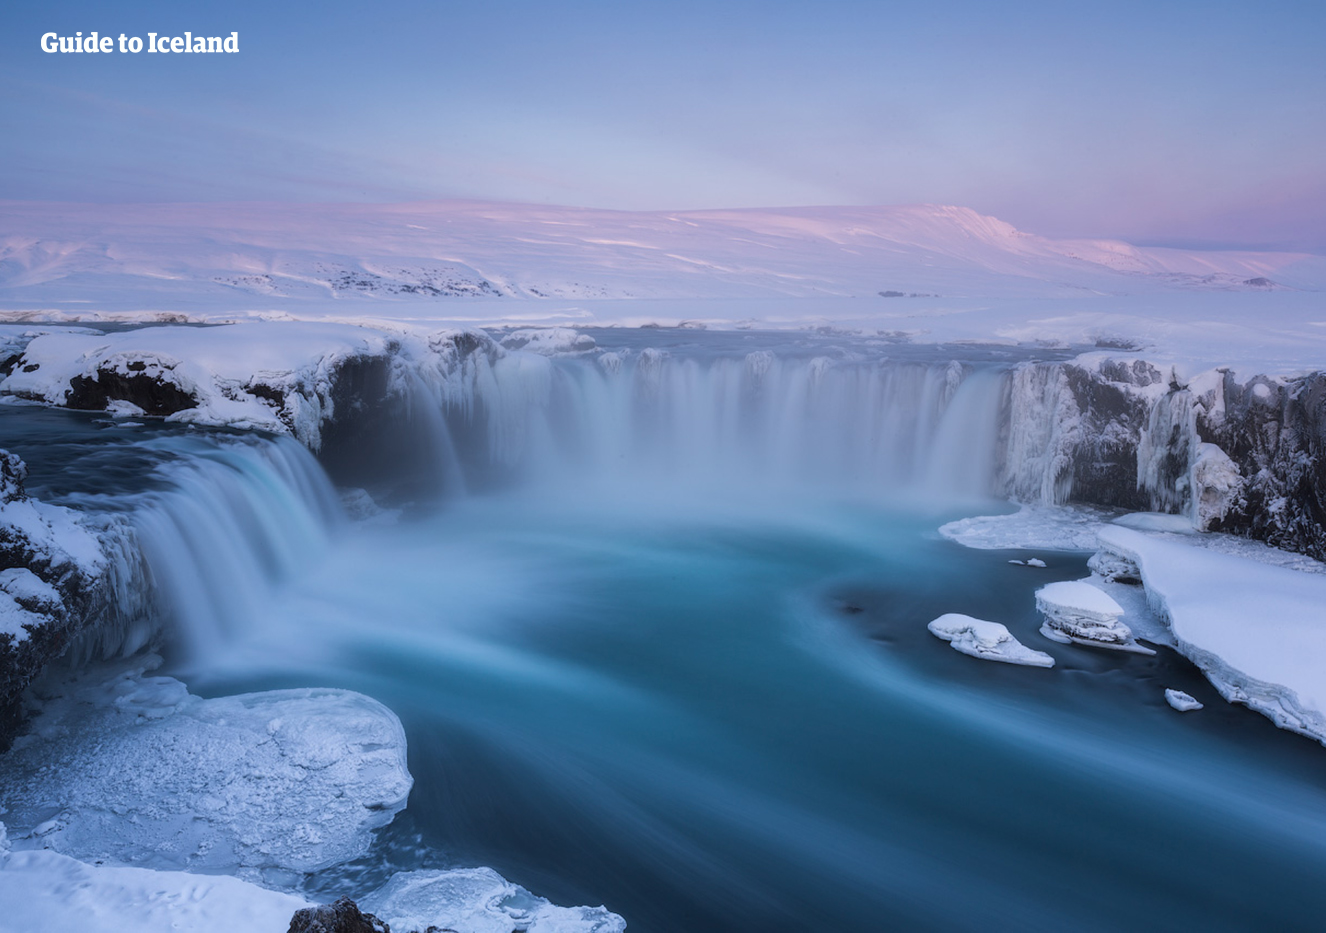 Water falling down arch-shaped cliffs form northern Iceland's Goðafoss waterfall.